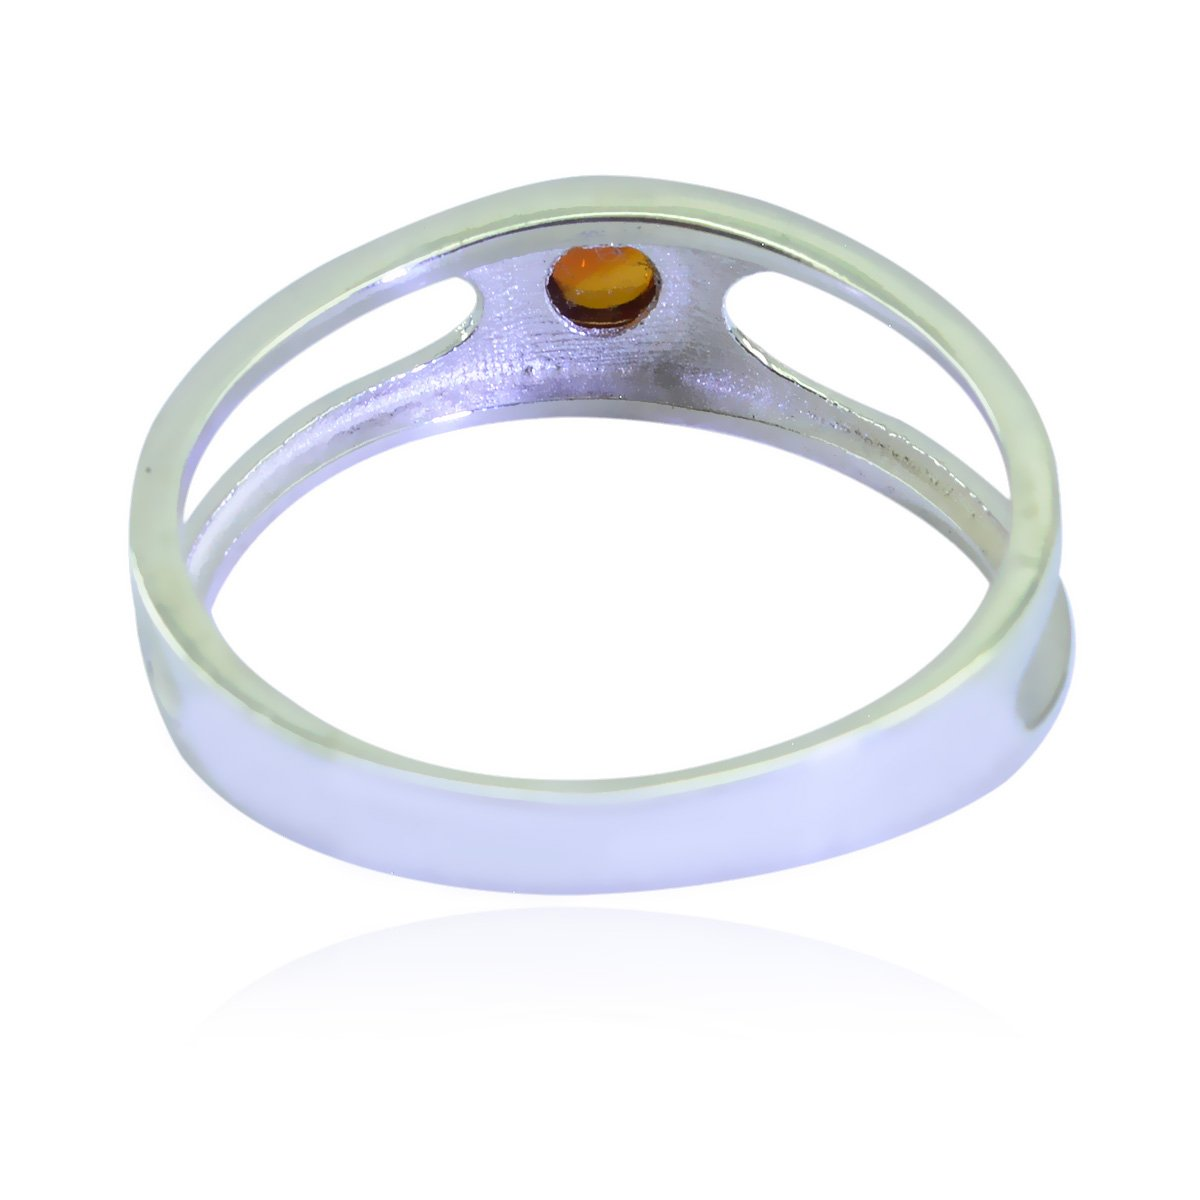 Genuine Gems Round cabochon Citrine Rings Sterling Silver Yellow Citrine Genuine Gems Ring Daughter Jewelry Highest Selling Items Gift for Teachers Day Highest Ring